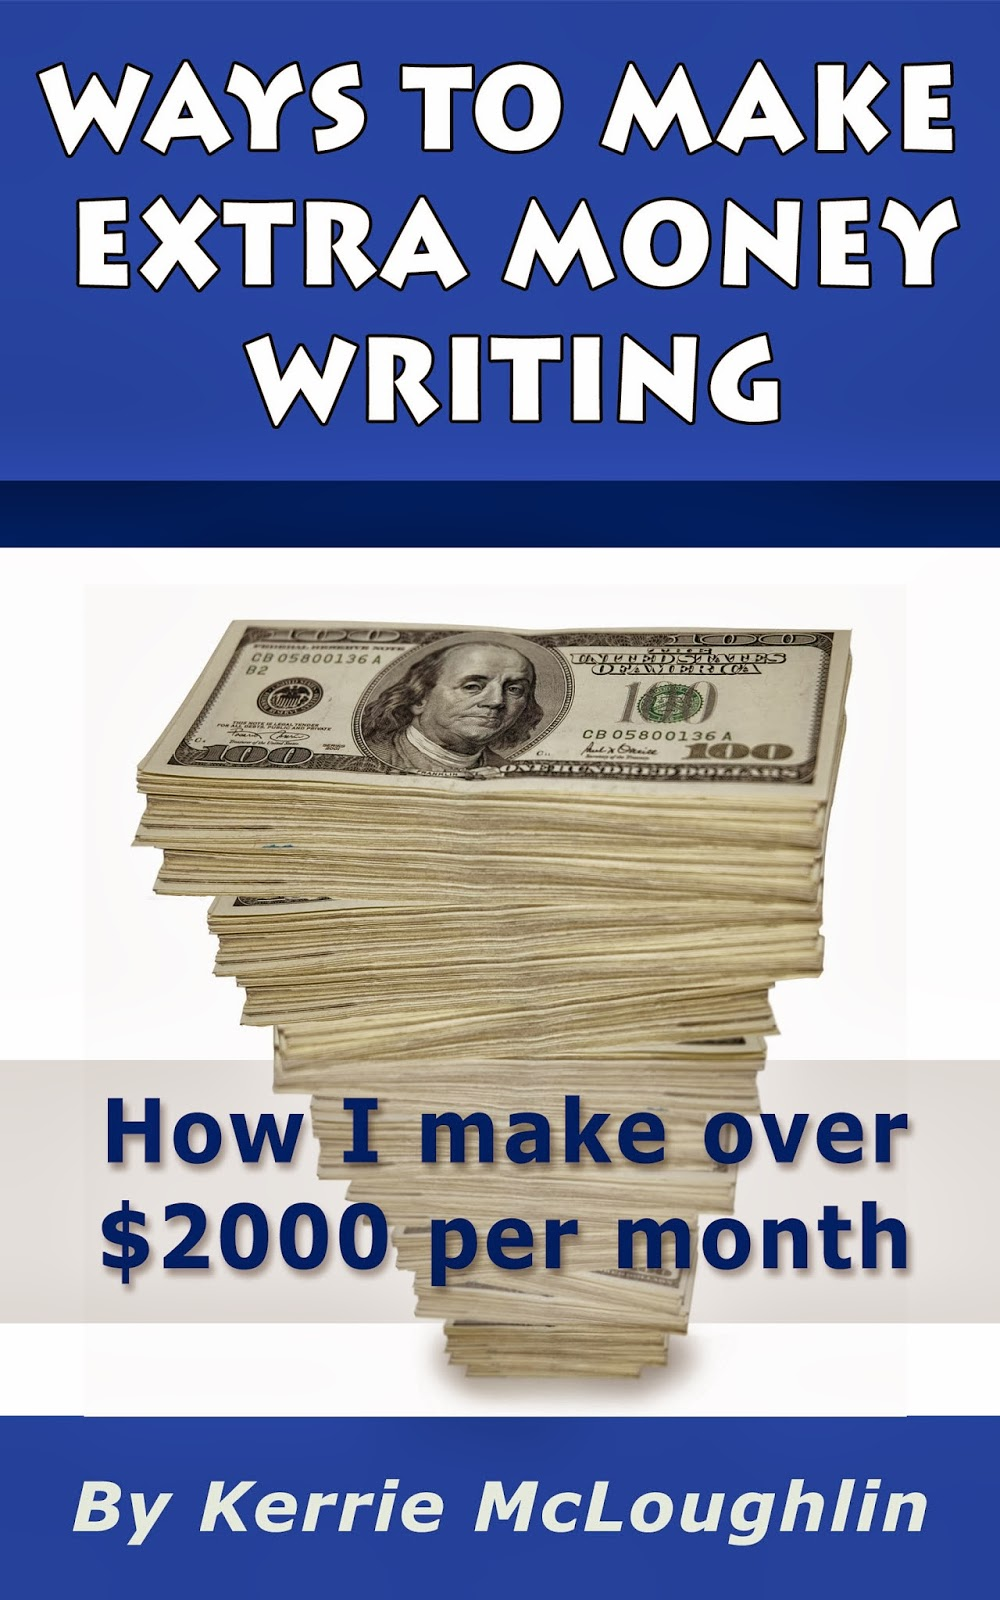 make money online writing If you're looking for cutting edge techniques to make money writing, this article lists 21 unique actions you can do today.